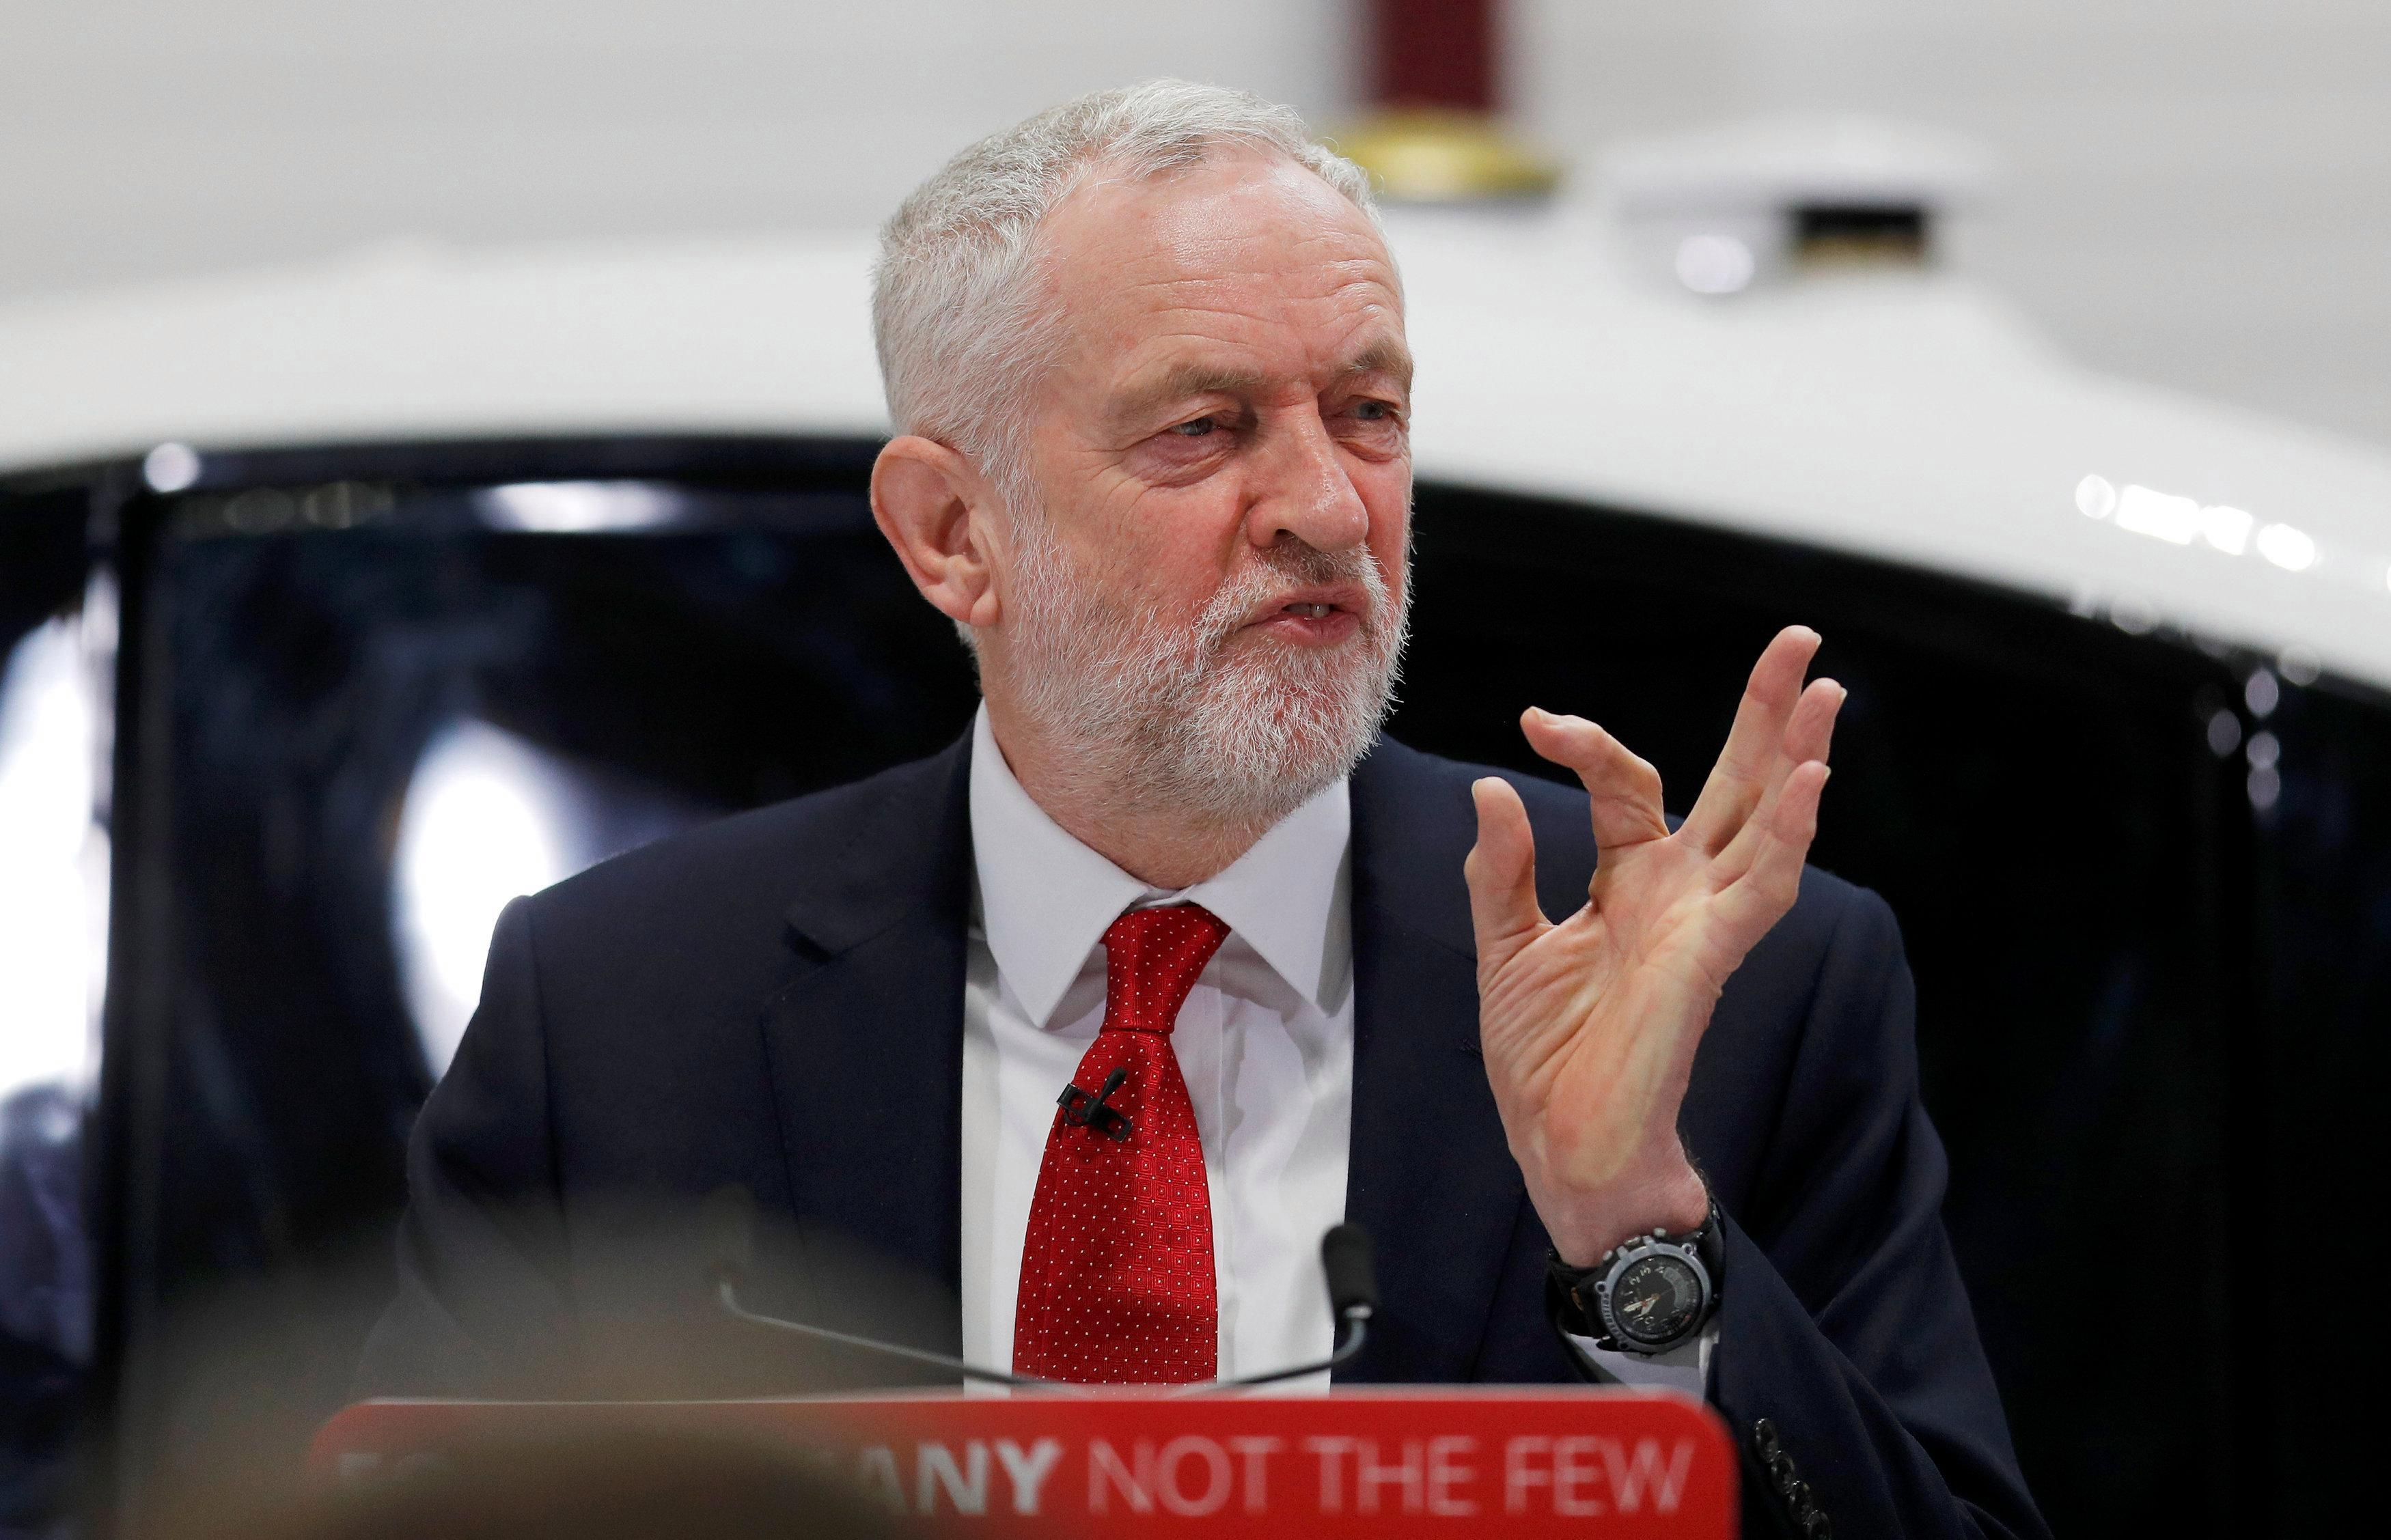 Jeremy Corbyn speech: Labour leader says Britain should hand over millions to EU so we can stay closely tied to Brussels after Brexit